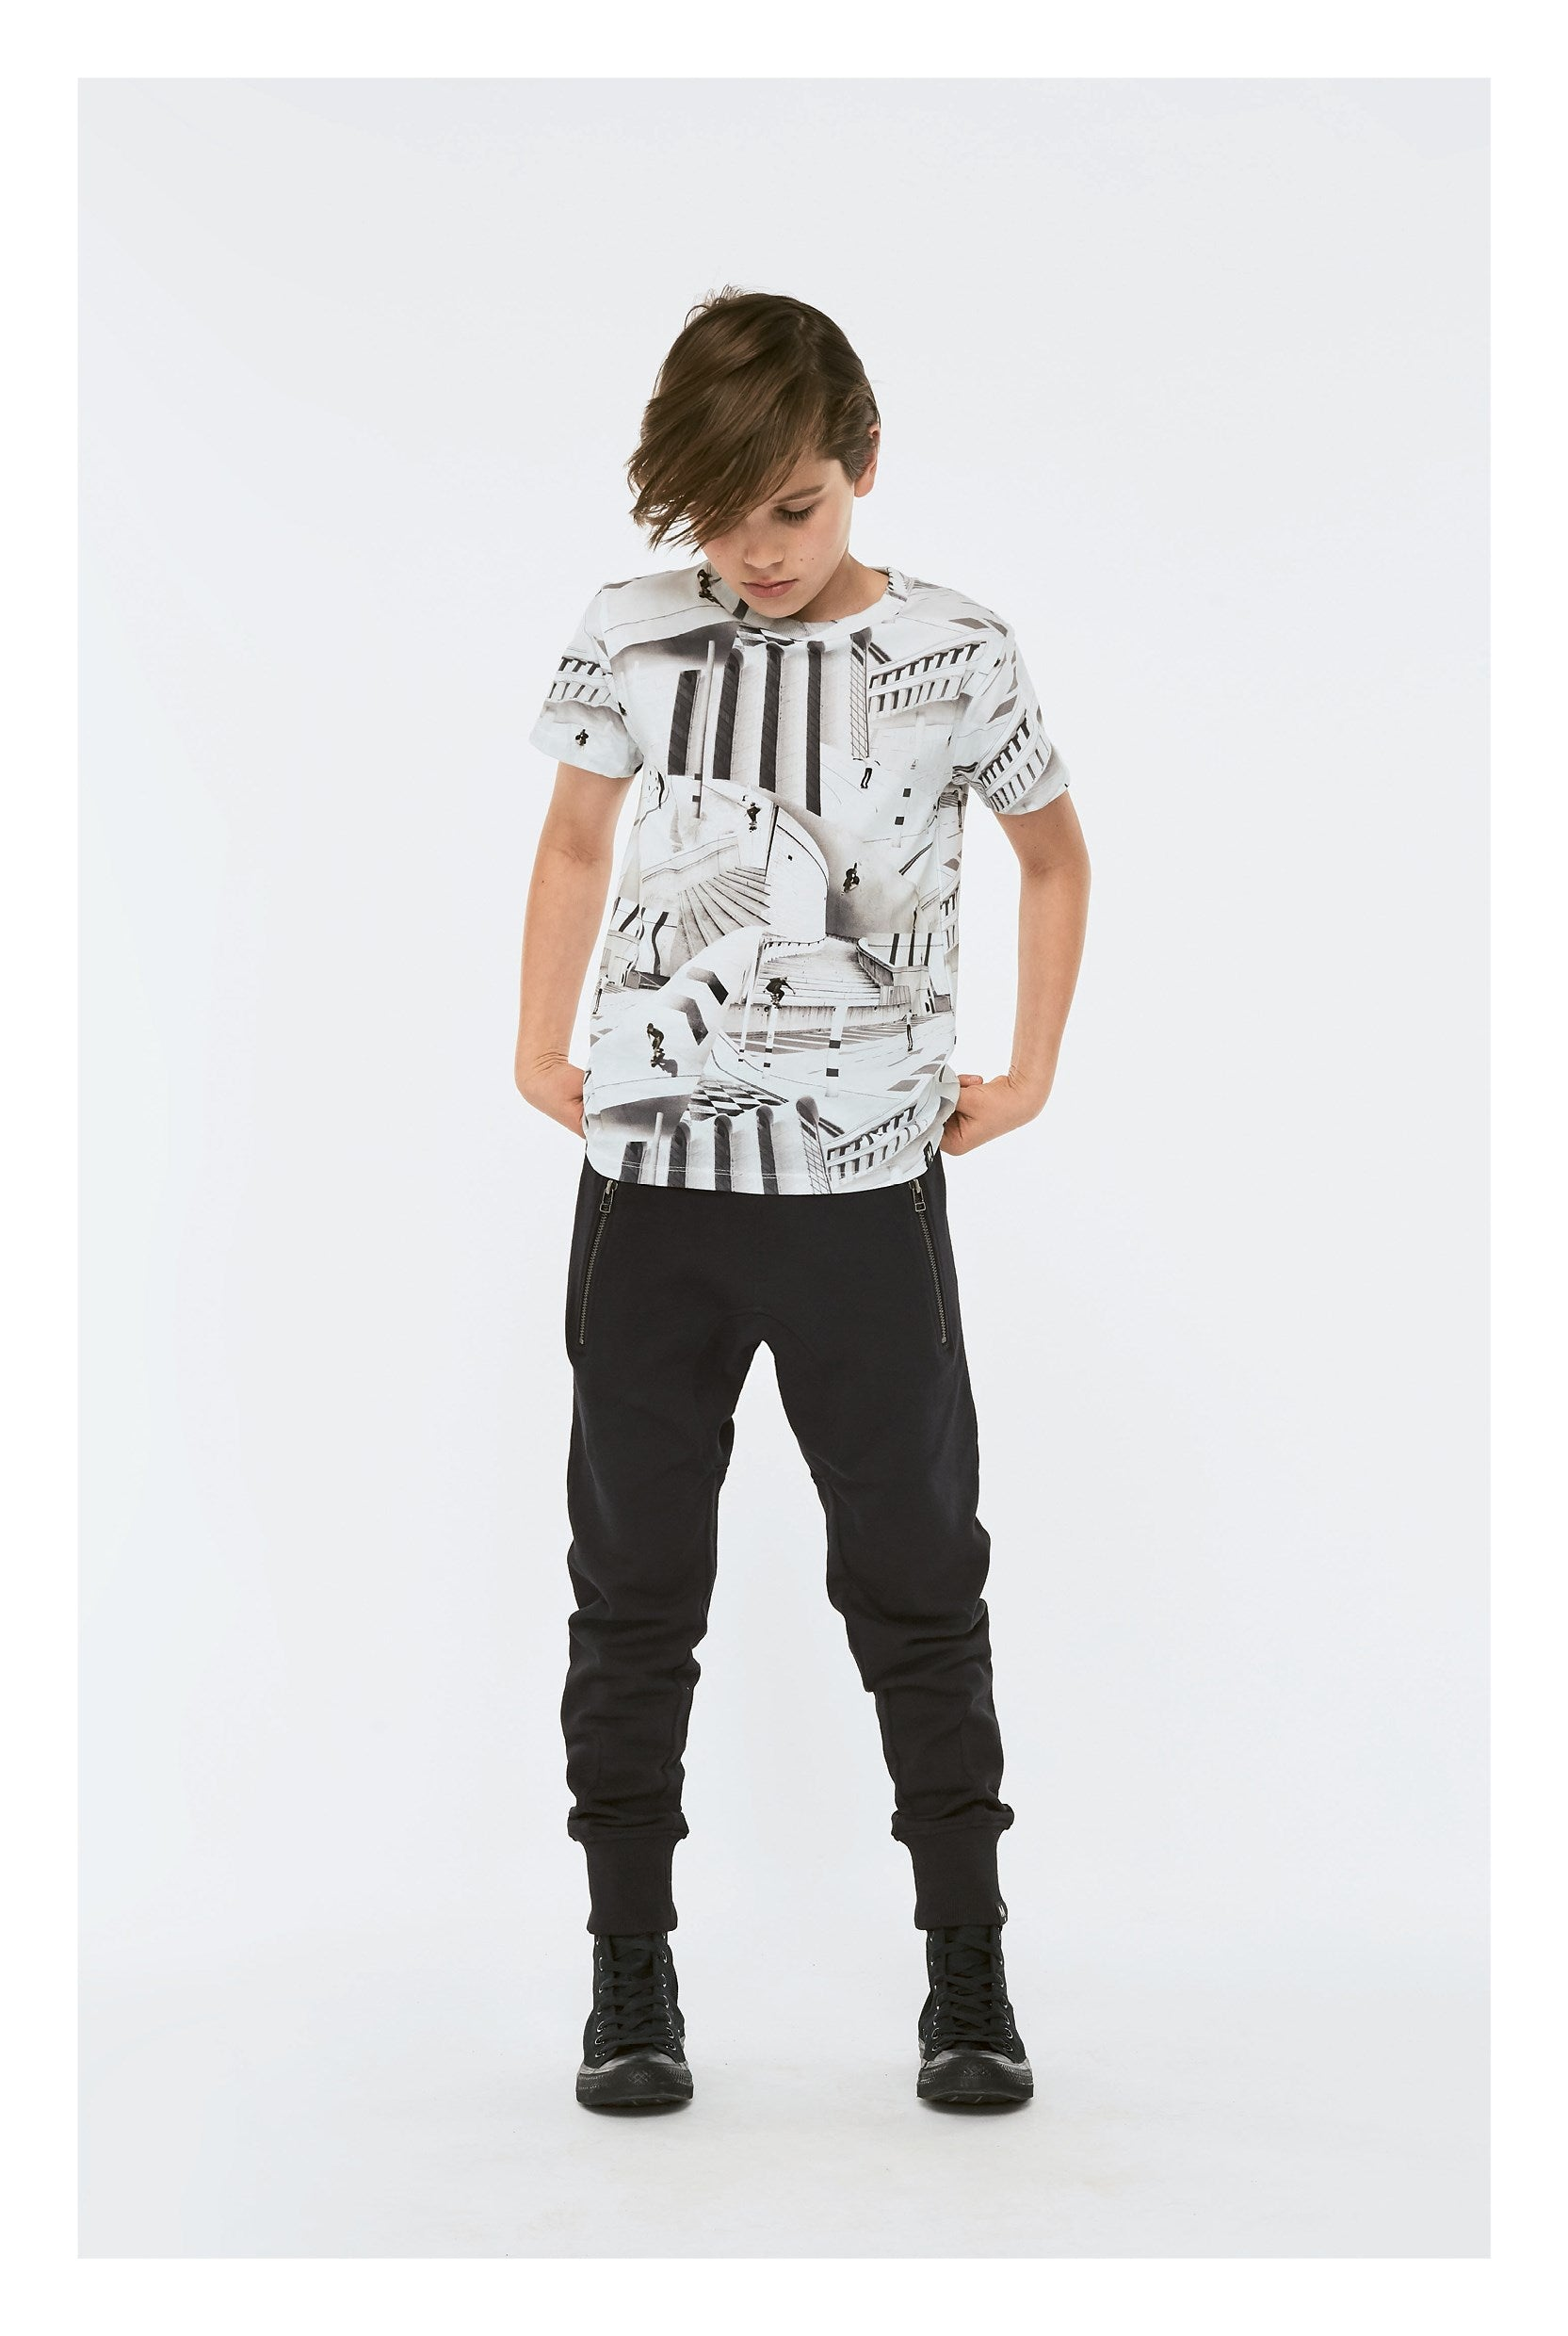 Designer Kids Fashion at Bloom Moda Online Children's Boutique - Molo Raymont Shirt,  Shirt